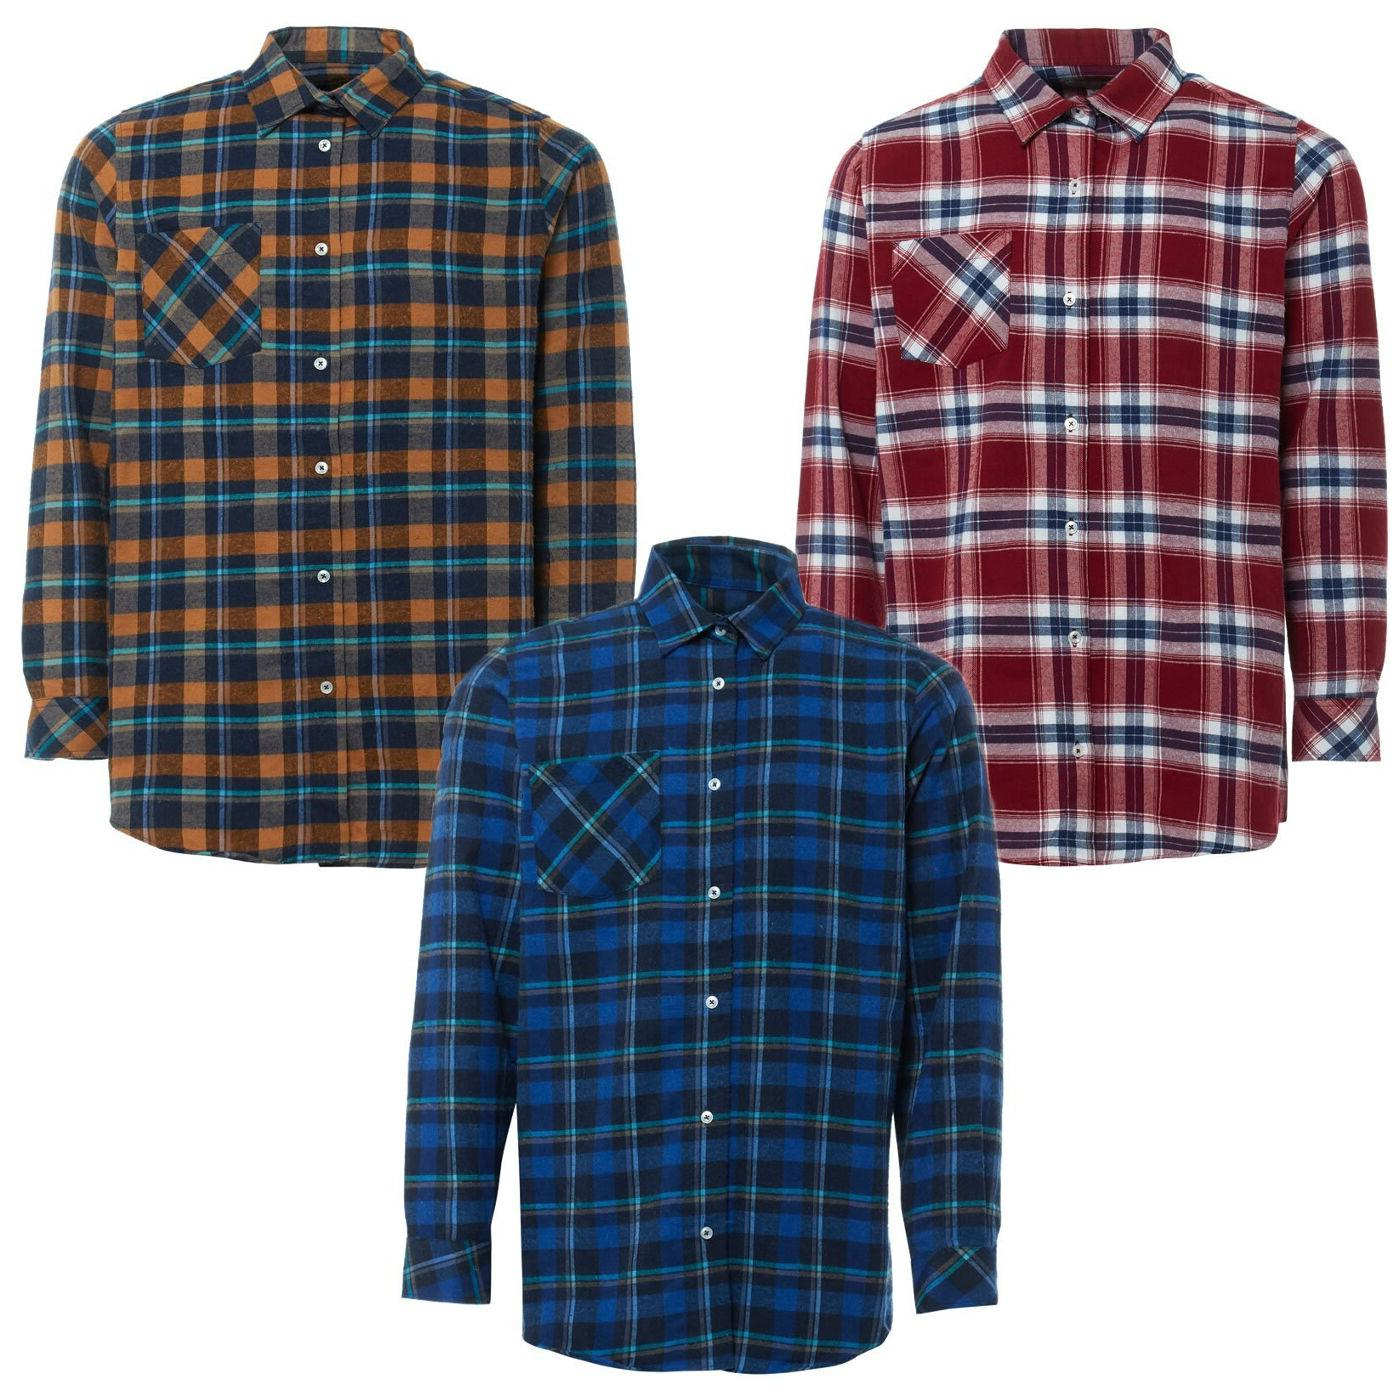 Mens Flannel Brushed Warm Work Shirts